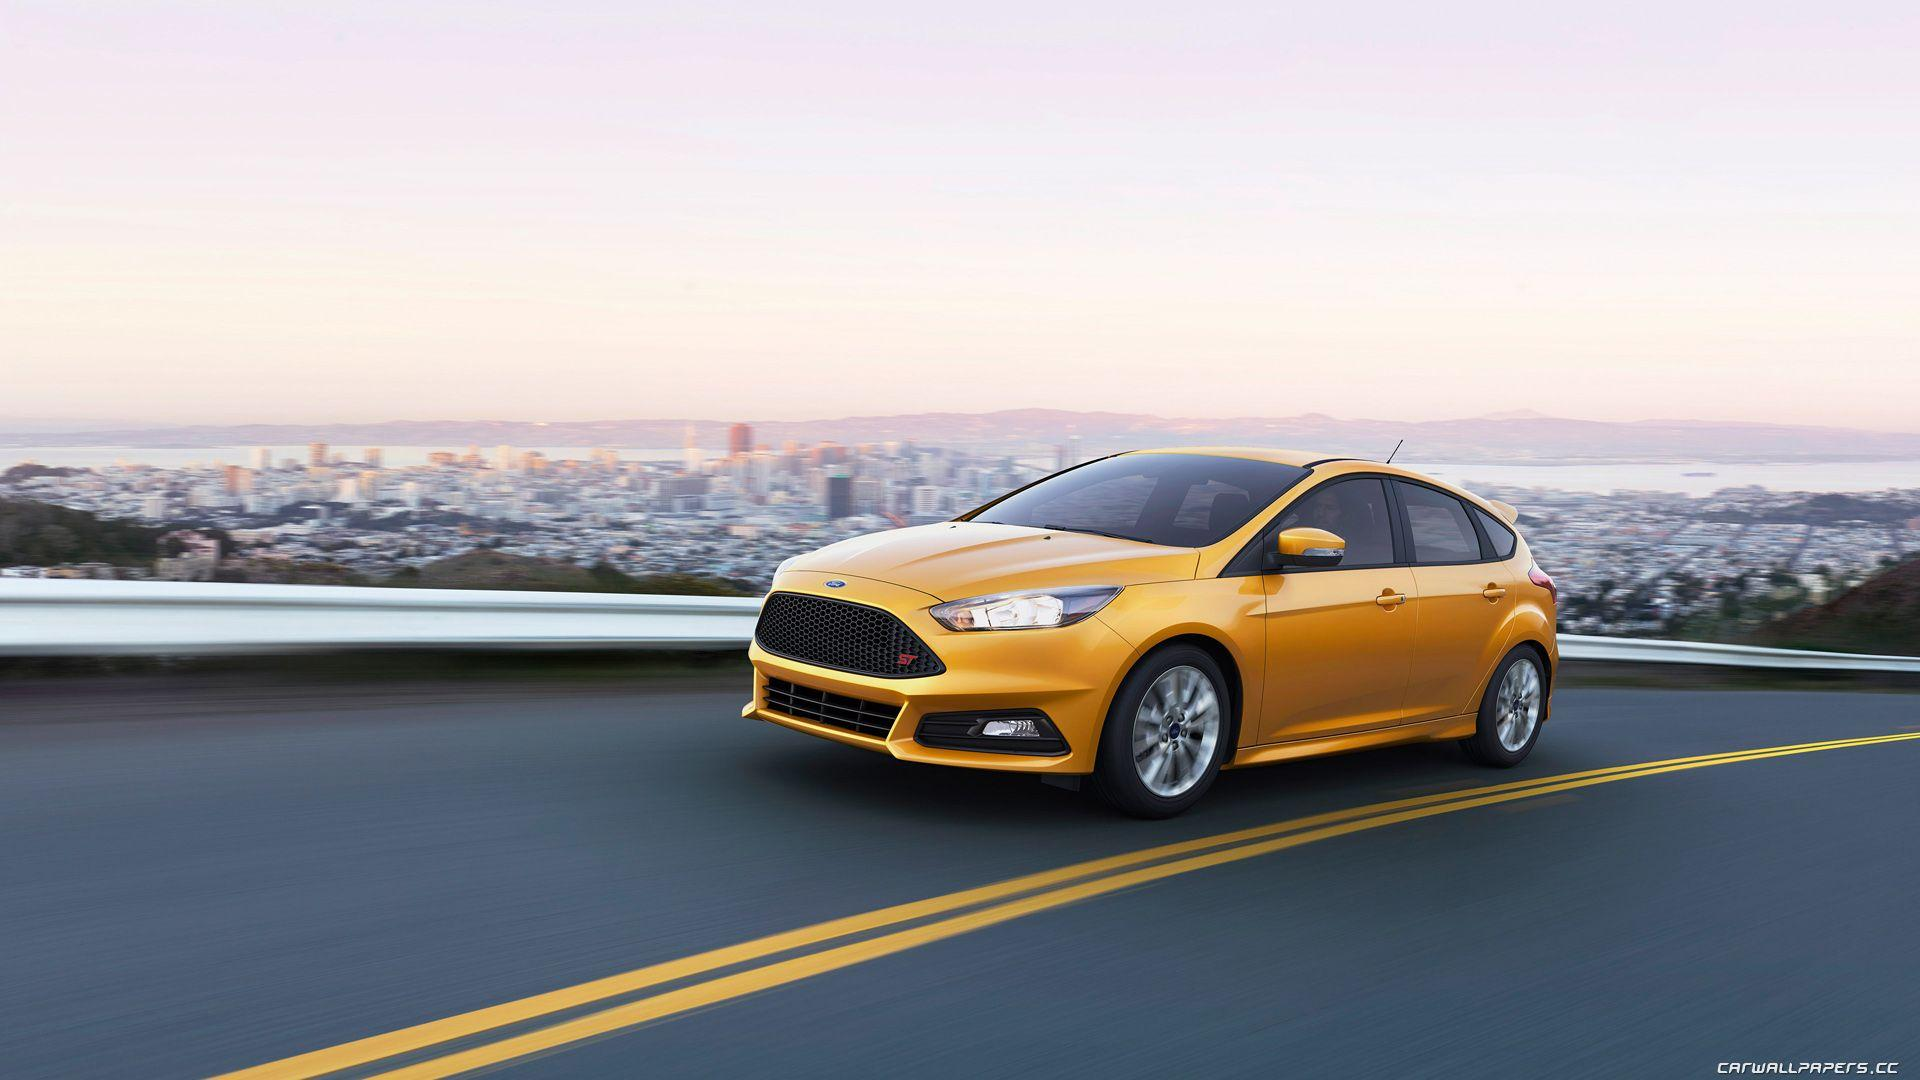 Ford Focus 2015 ST HD Wallpaper, Backgrounds Image